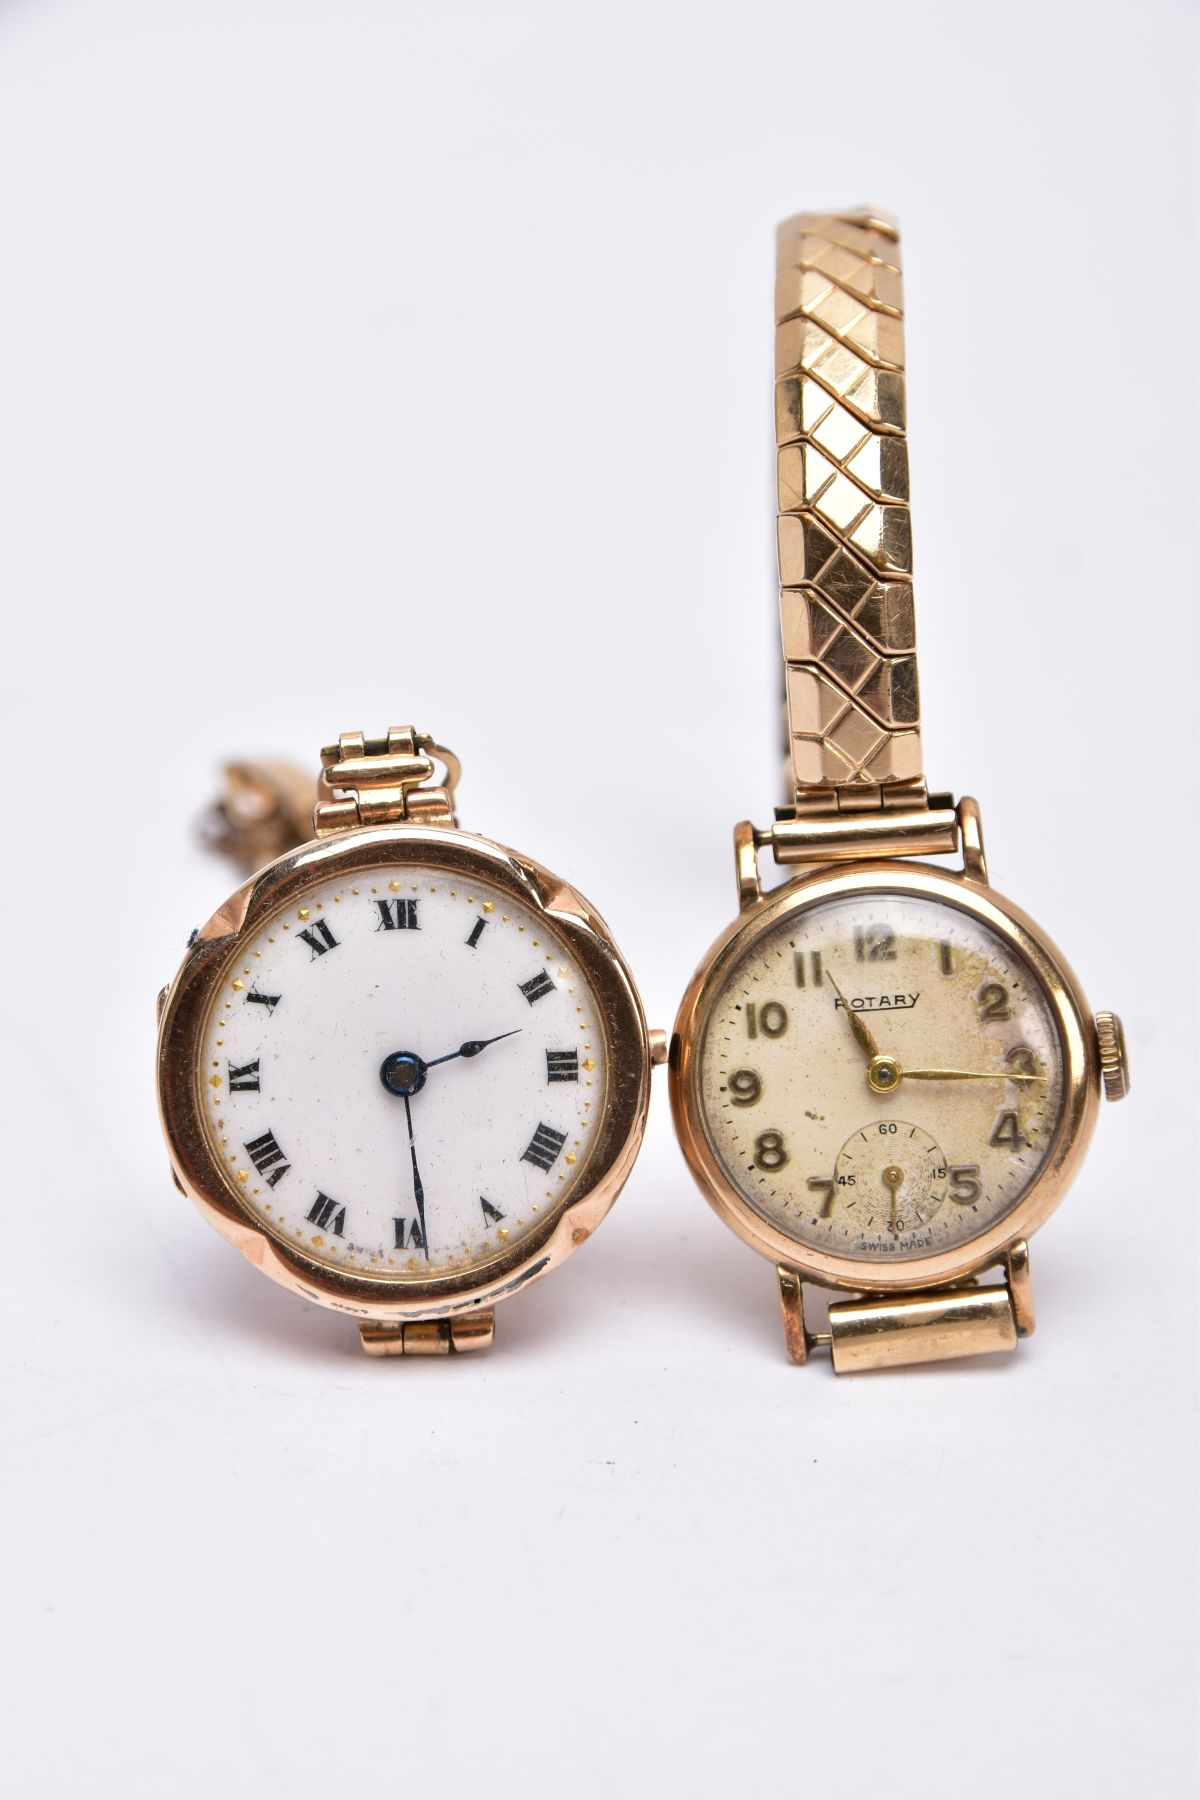 TWO GOLD CASED LADIES WRISTWATCHES, each fitted to gold plated bracelets, an early 20th century - Image 4 of 4